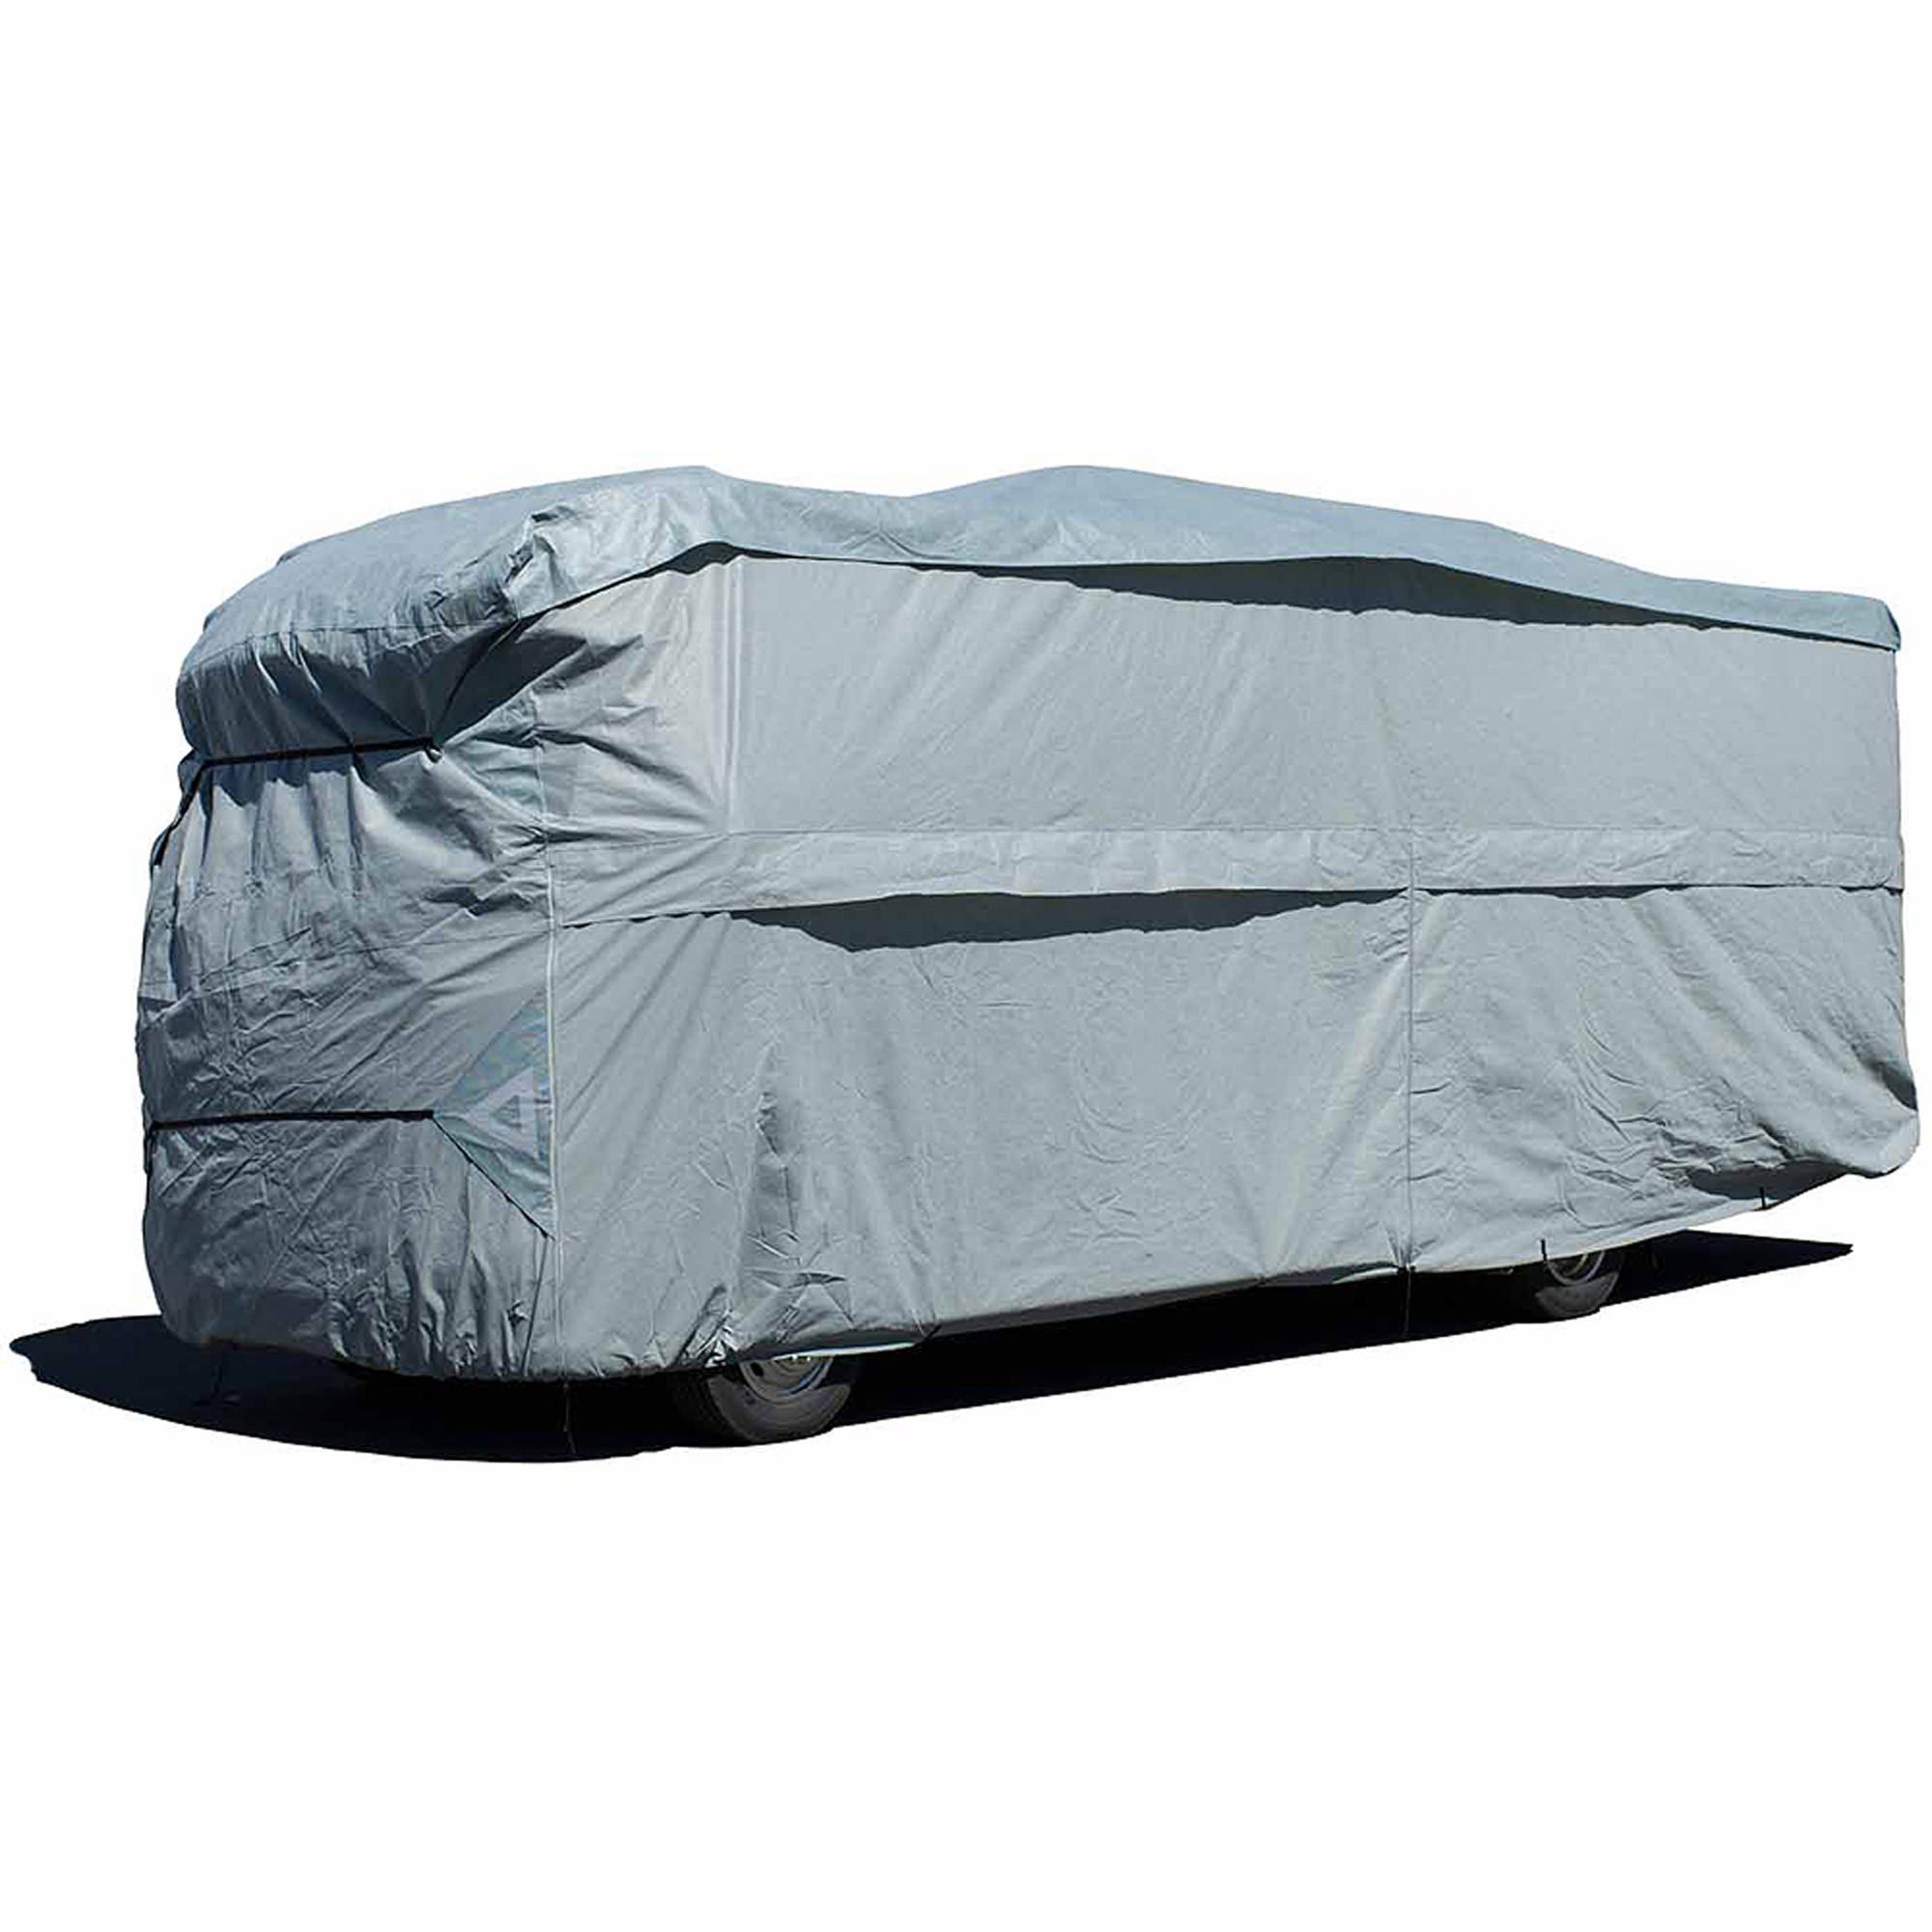 Duck Covers Globetrotter Class A RV Cover